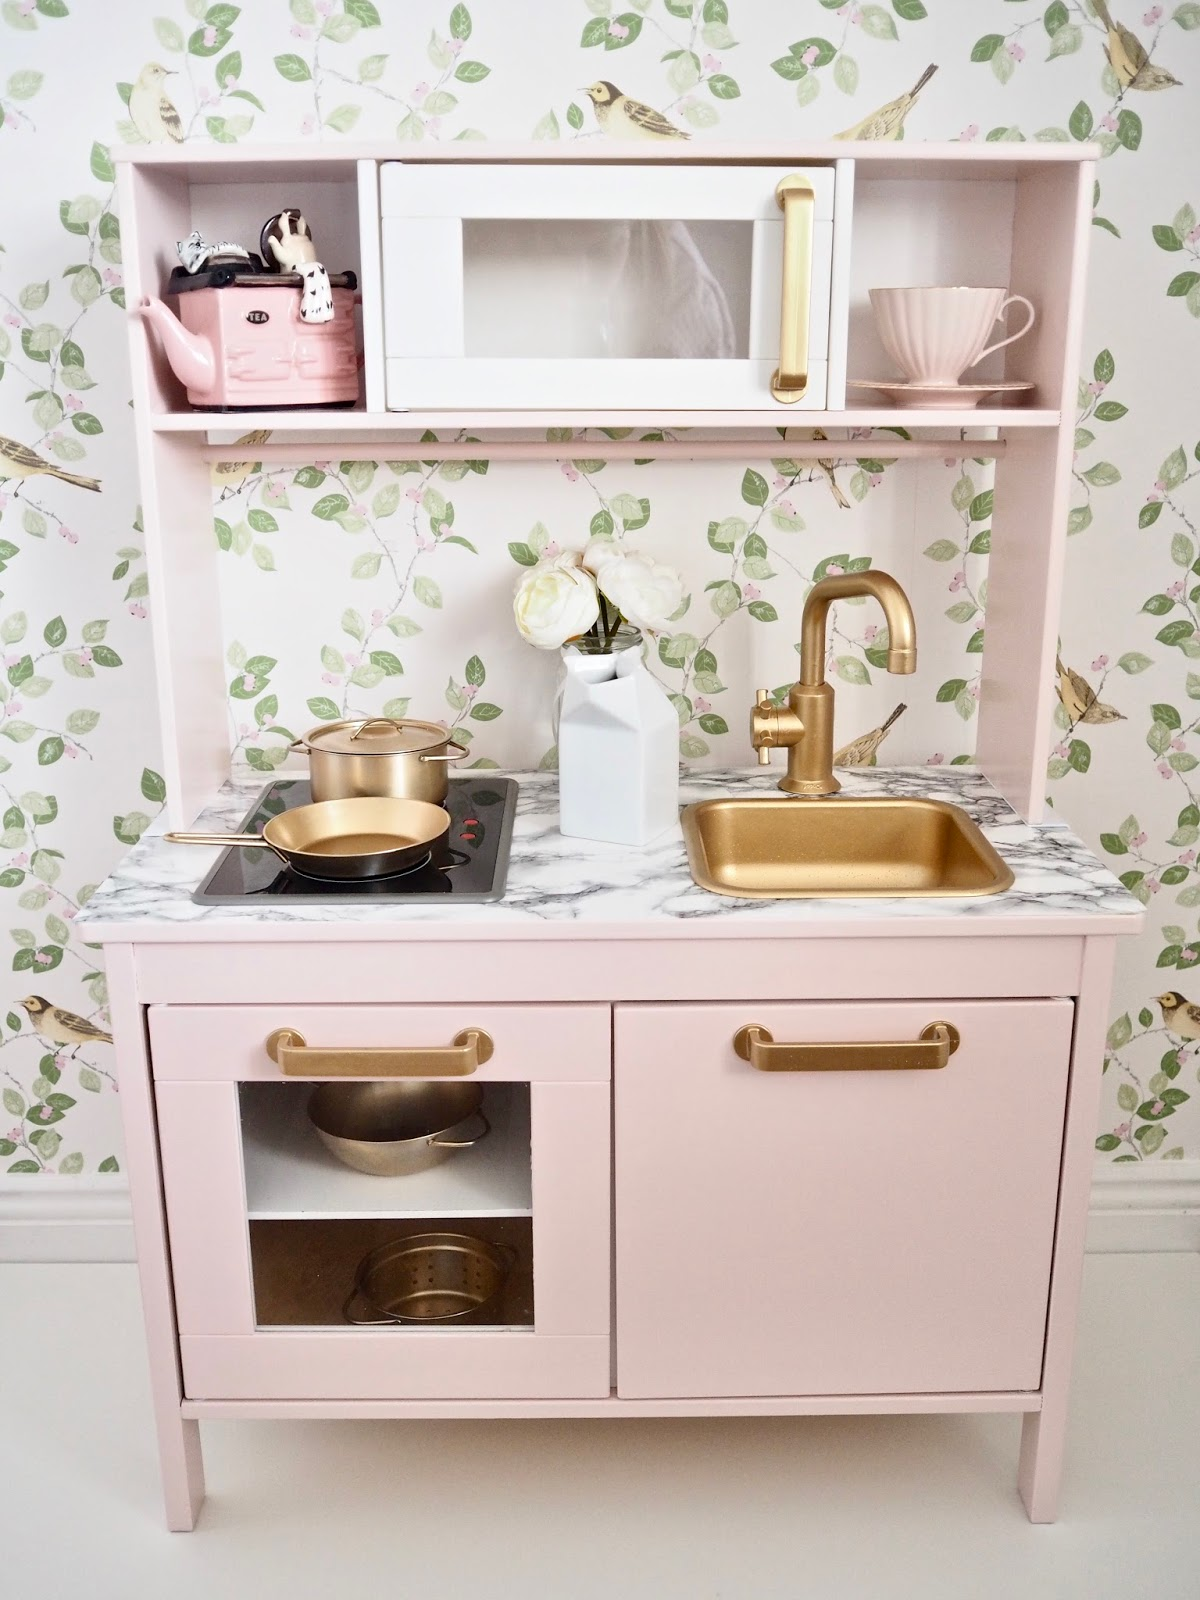 Ikea Duktig play kitchen makeover | The dainty dress diaries